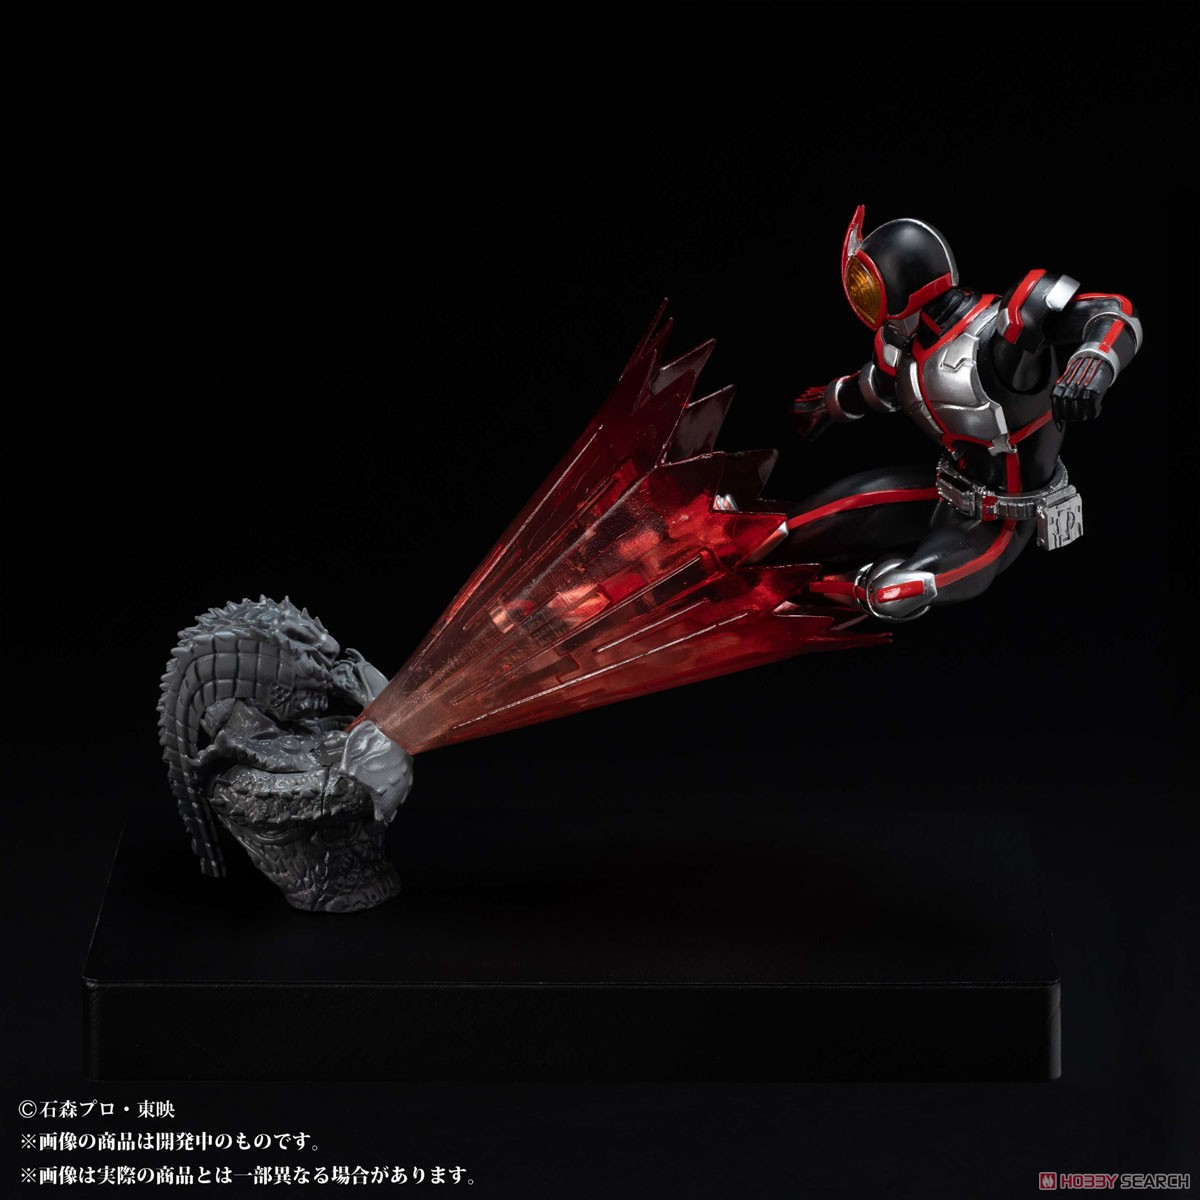 Glow In The Dark『仮面ライダーファイズ』仮面ライダー555 完成品フィギュア-003